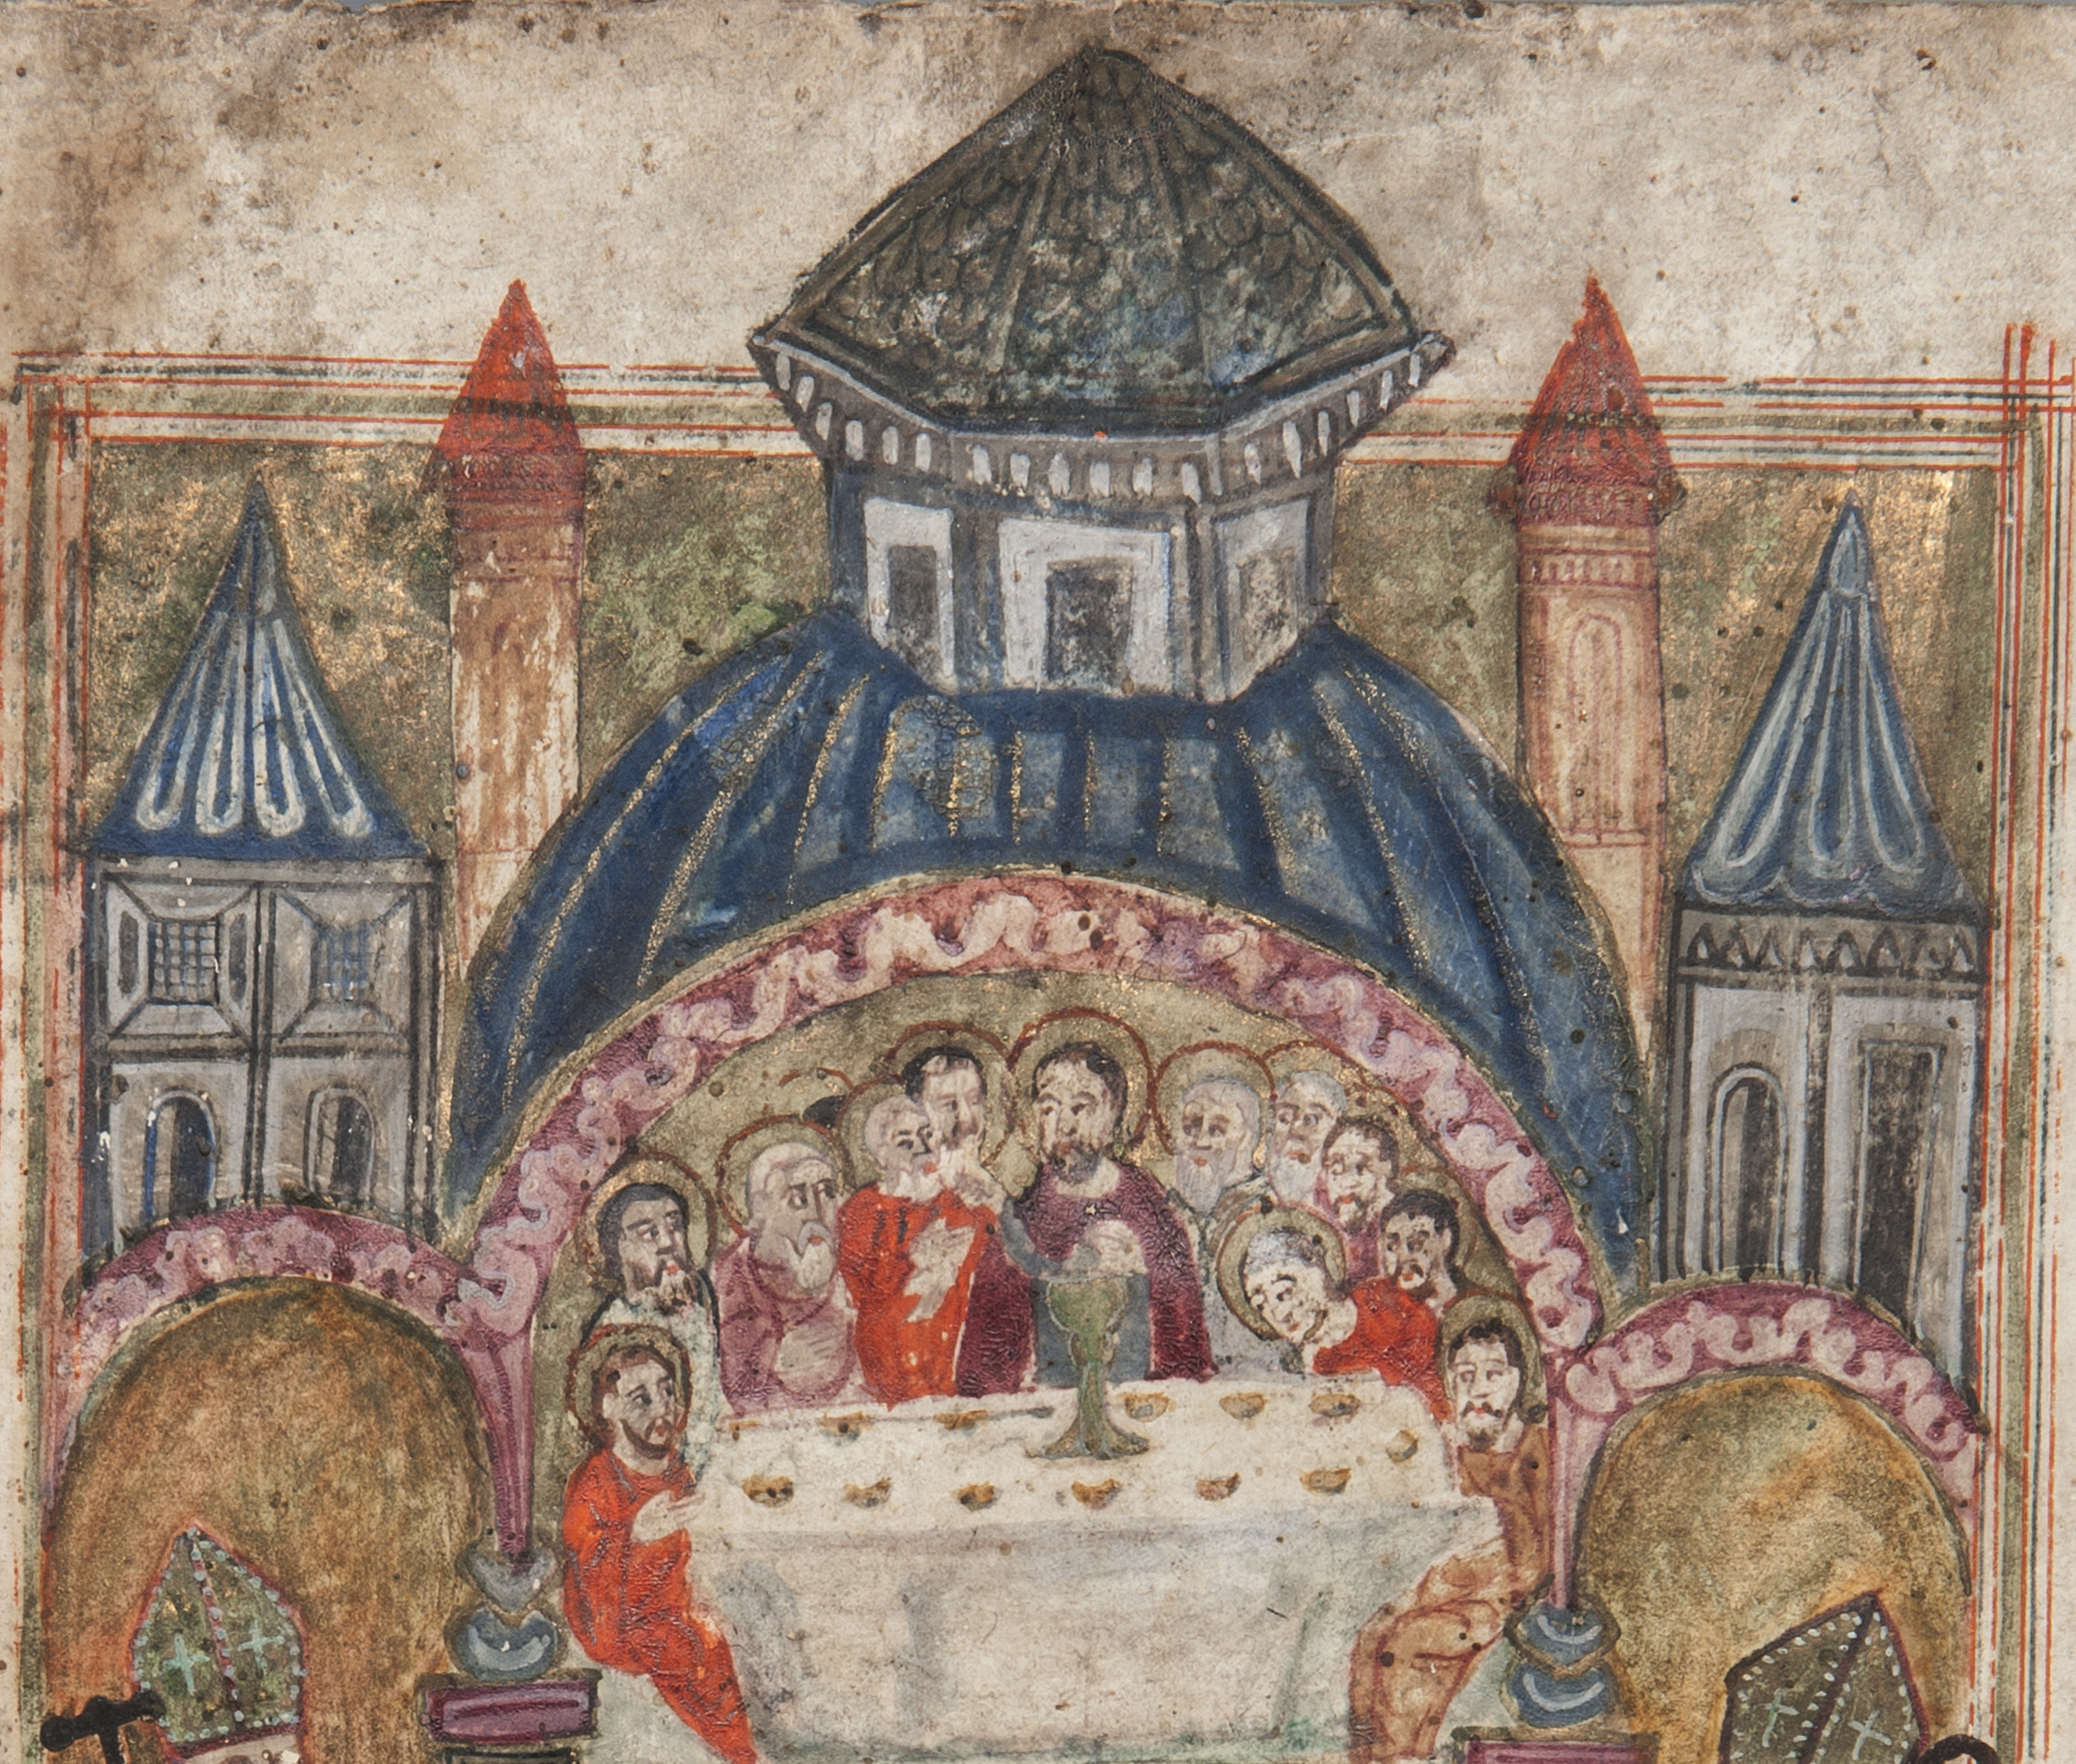 Detail of Liturgical Manuscript. Collection of the Armenian Museum of America. Donated by Haig Der Manuelian, 1983.